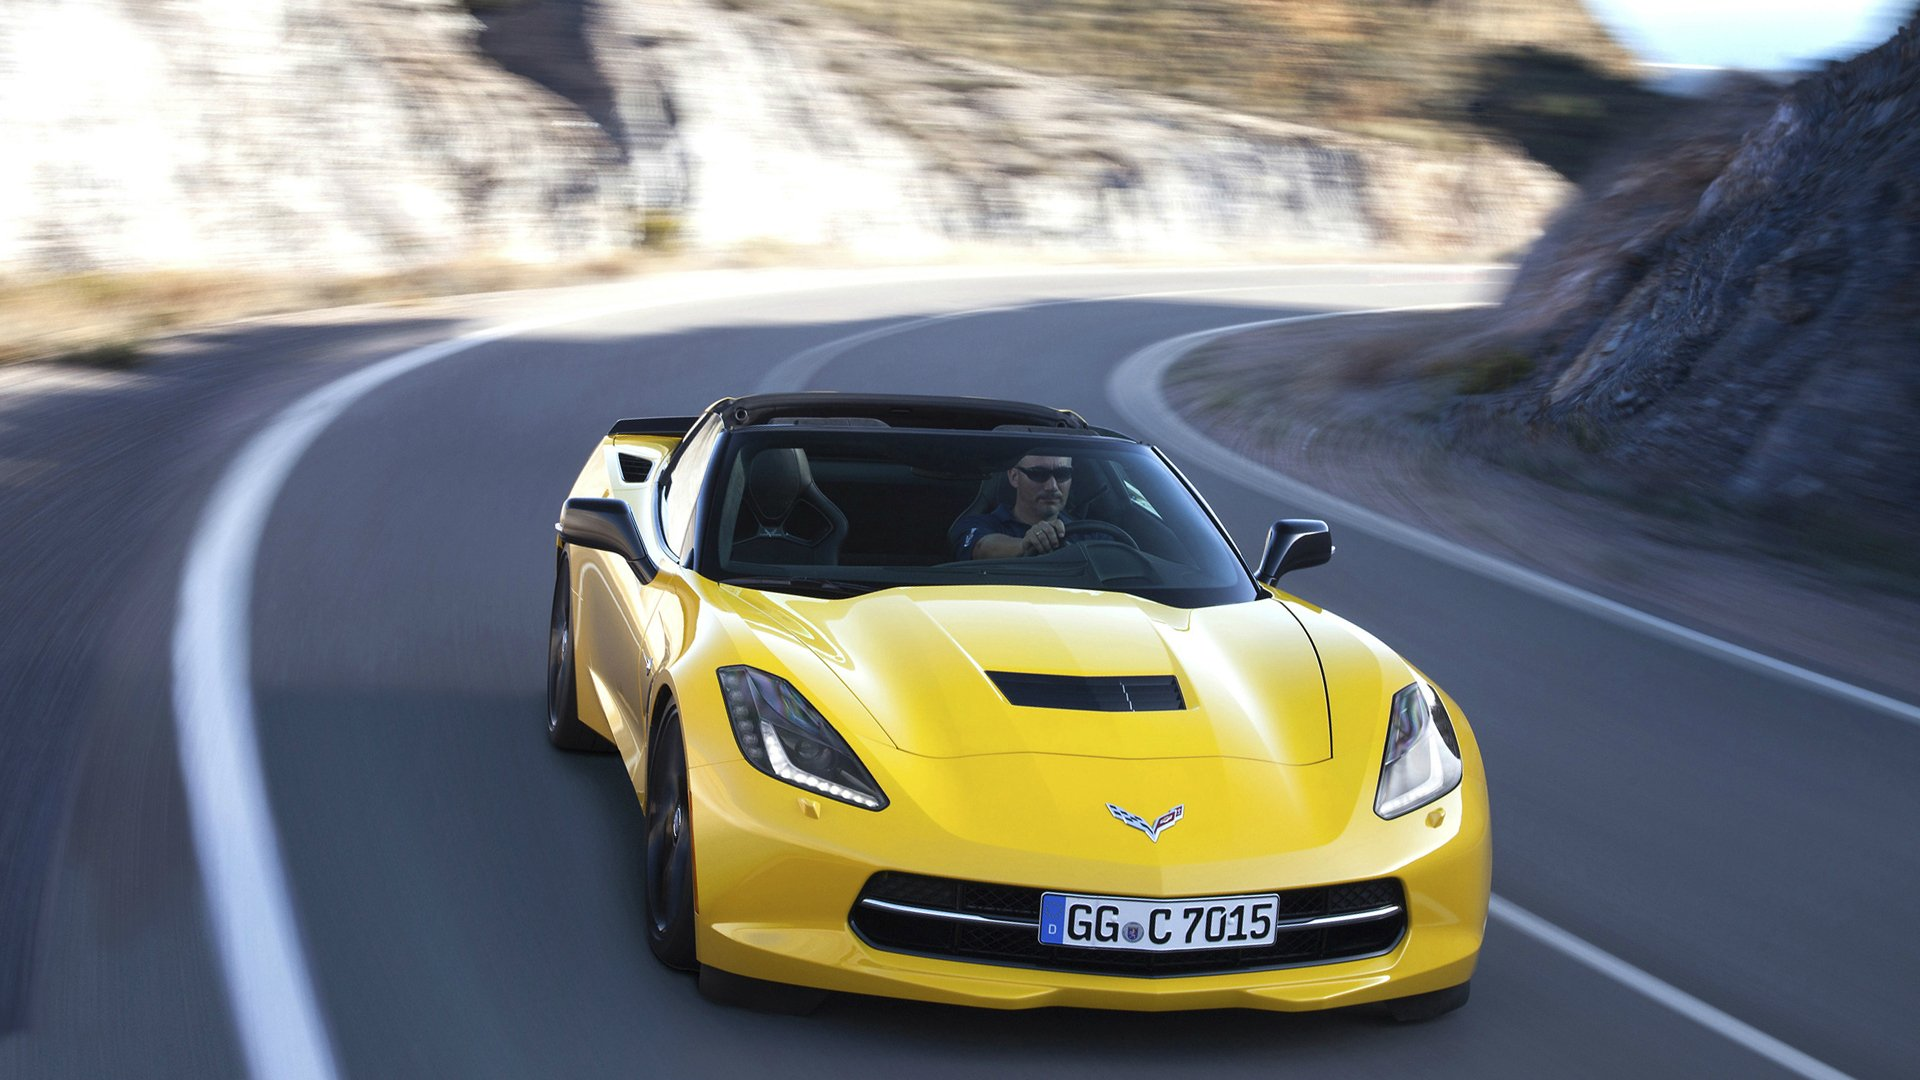 New 2019 Chevrolet Corvette Exterior Changes